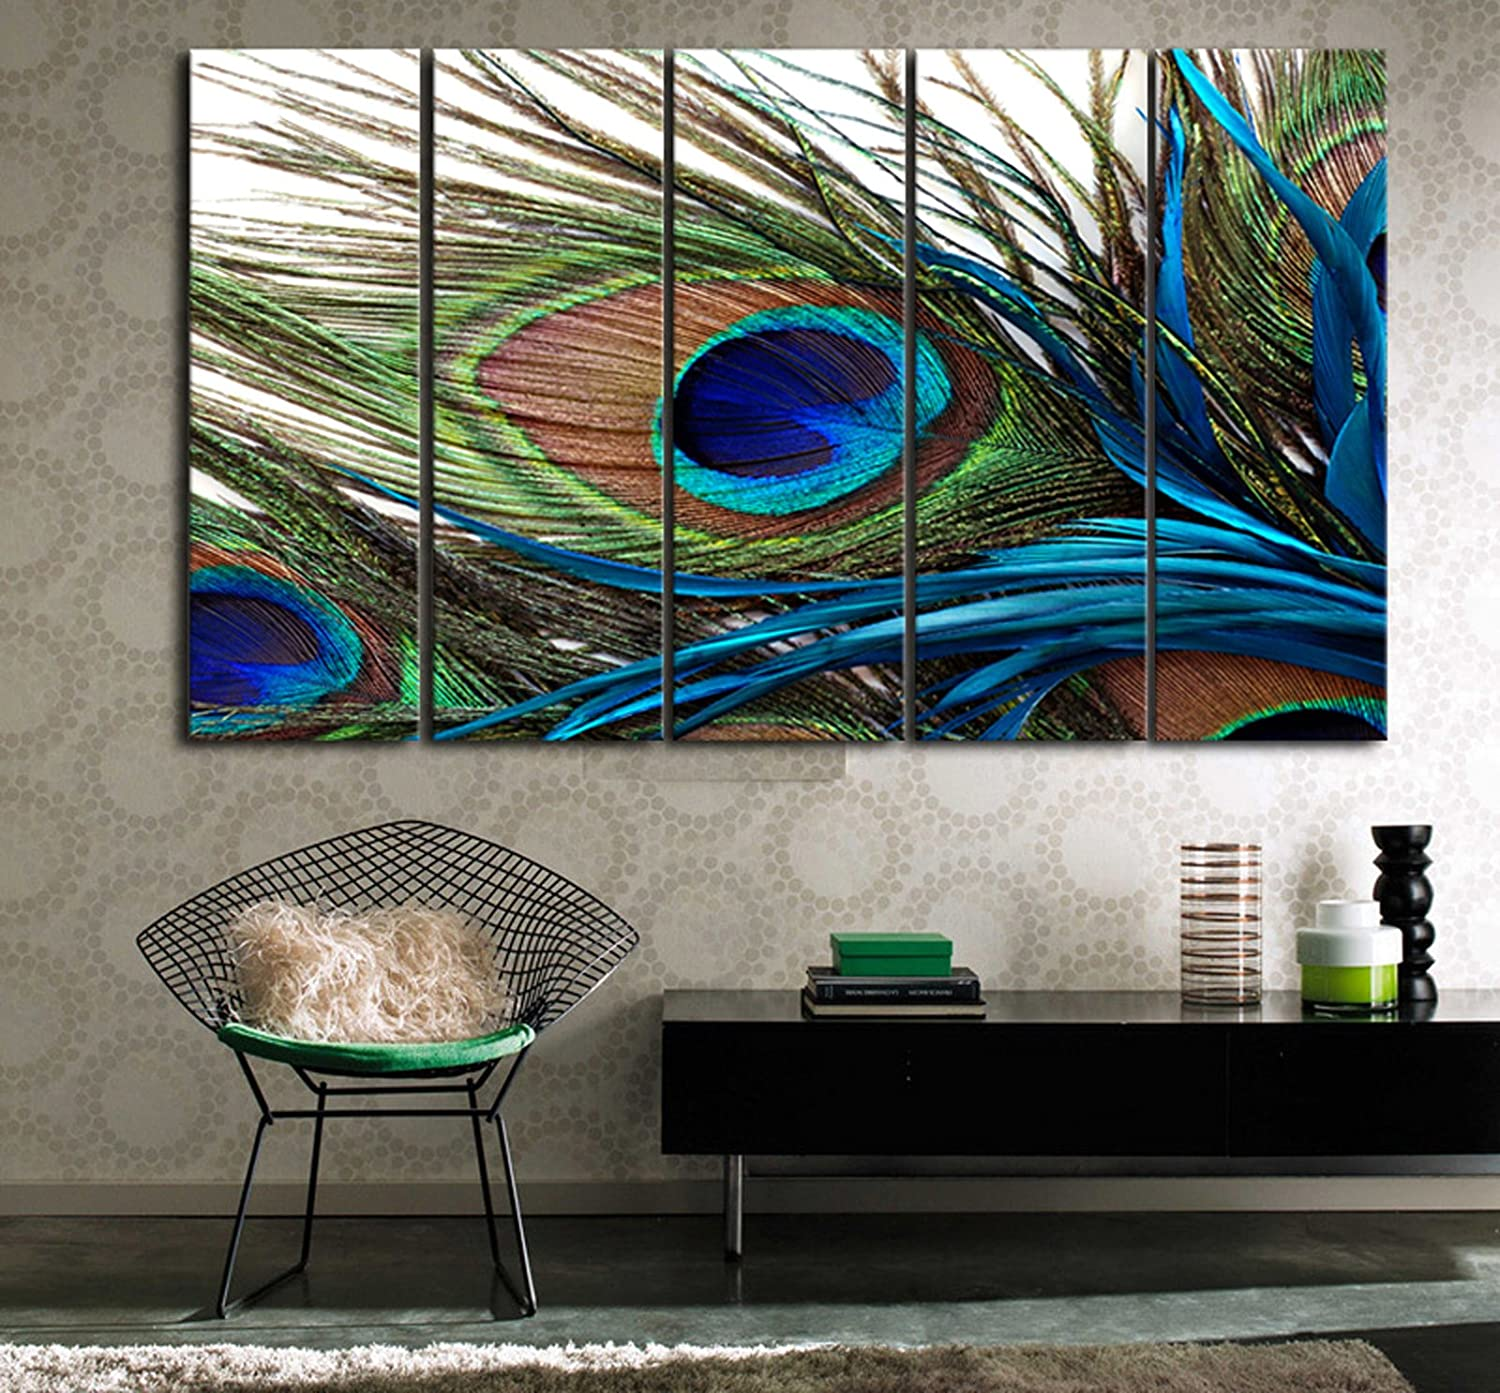 12 Peacock Themed Home Decor My Small Apartment